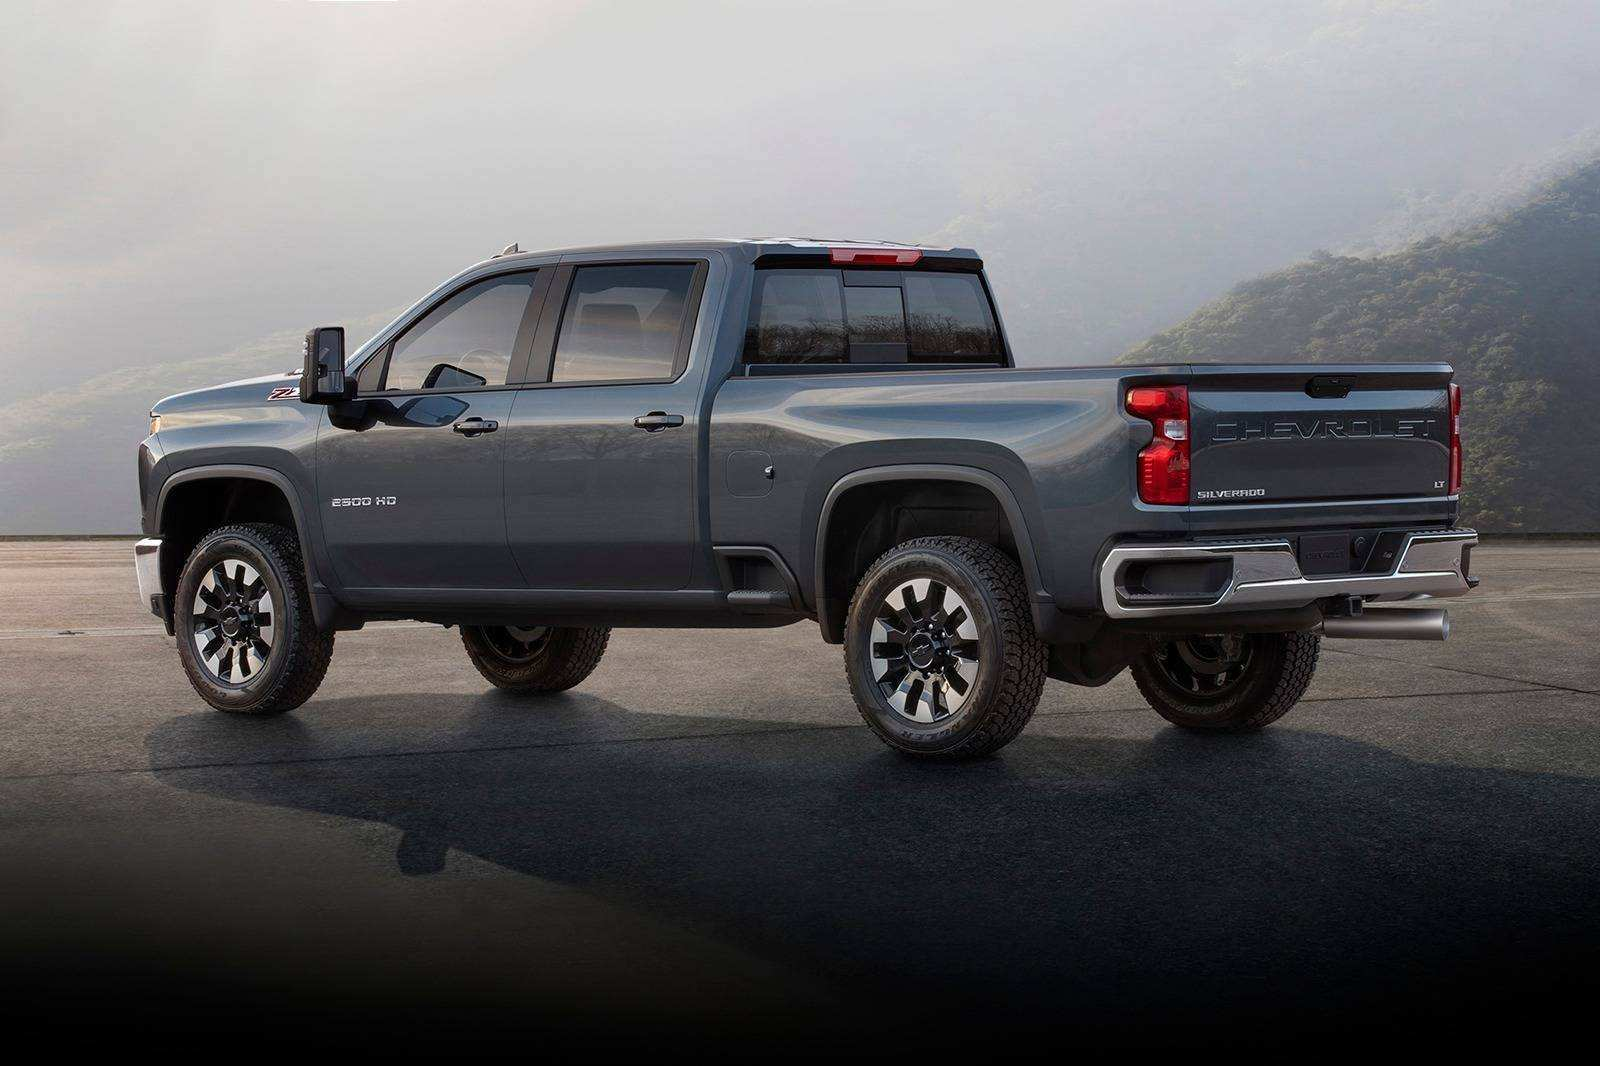 44 All New Chevrolet Pickup 2020 Photos